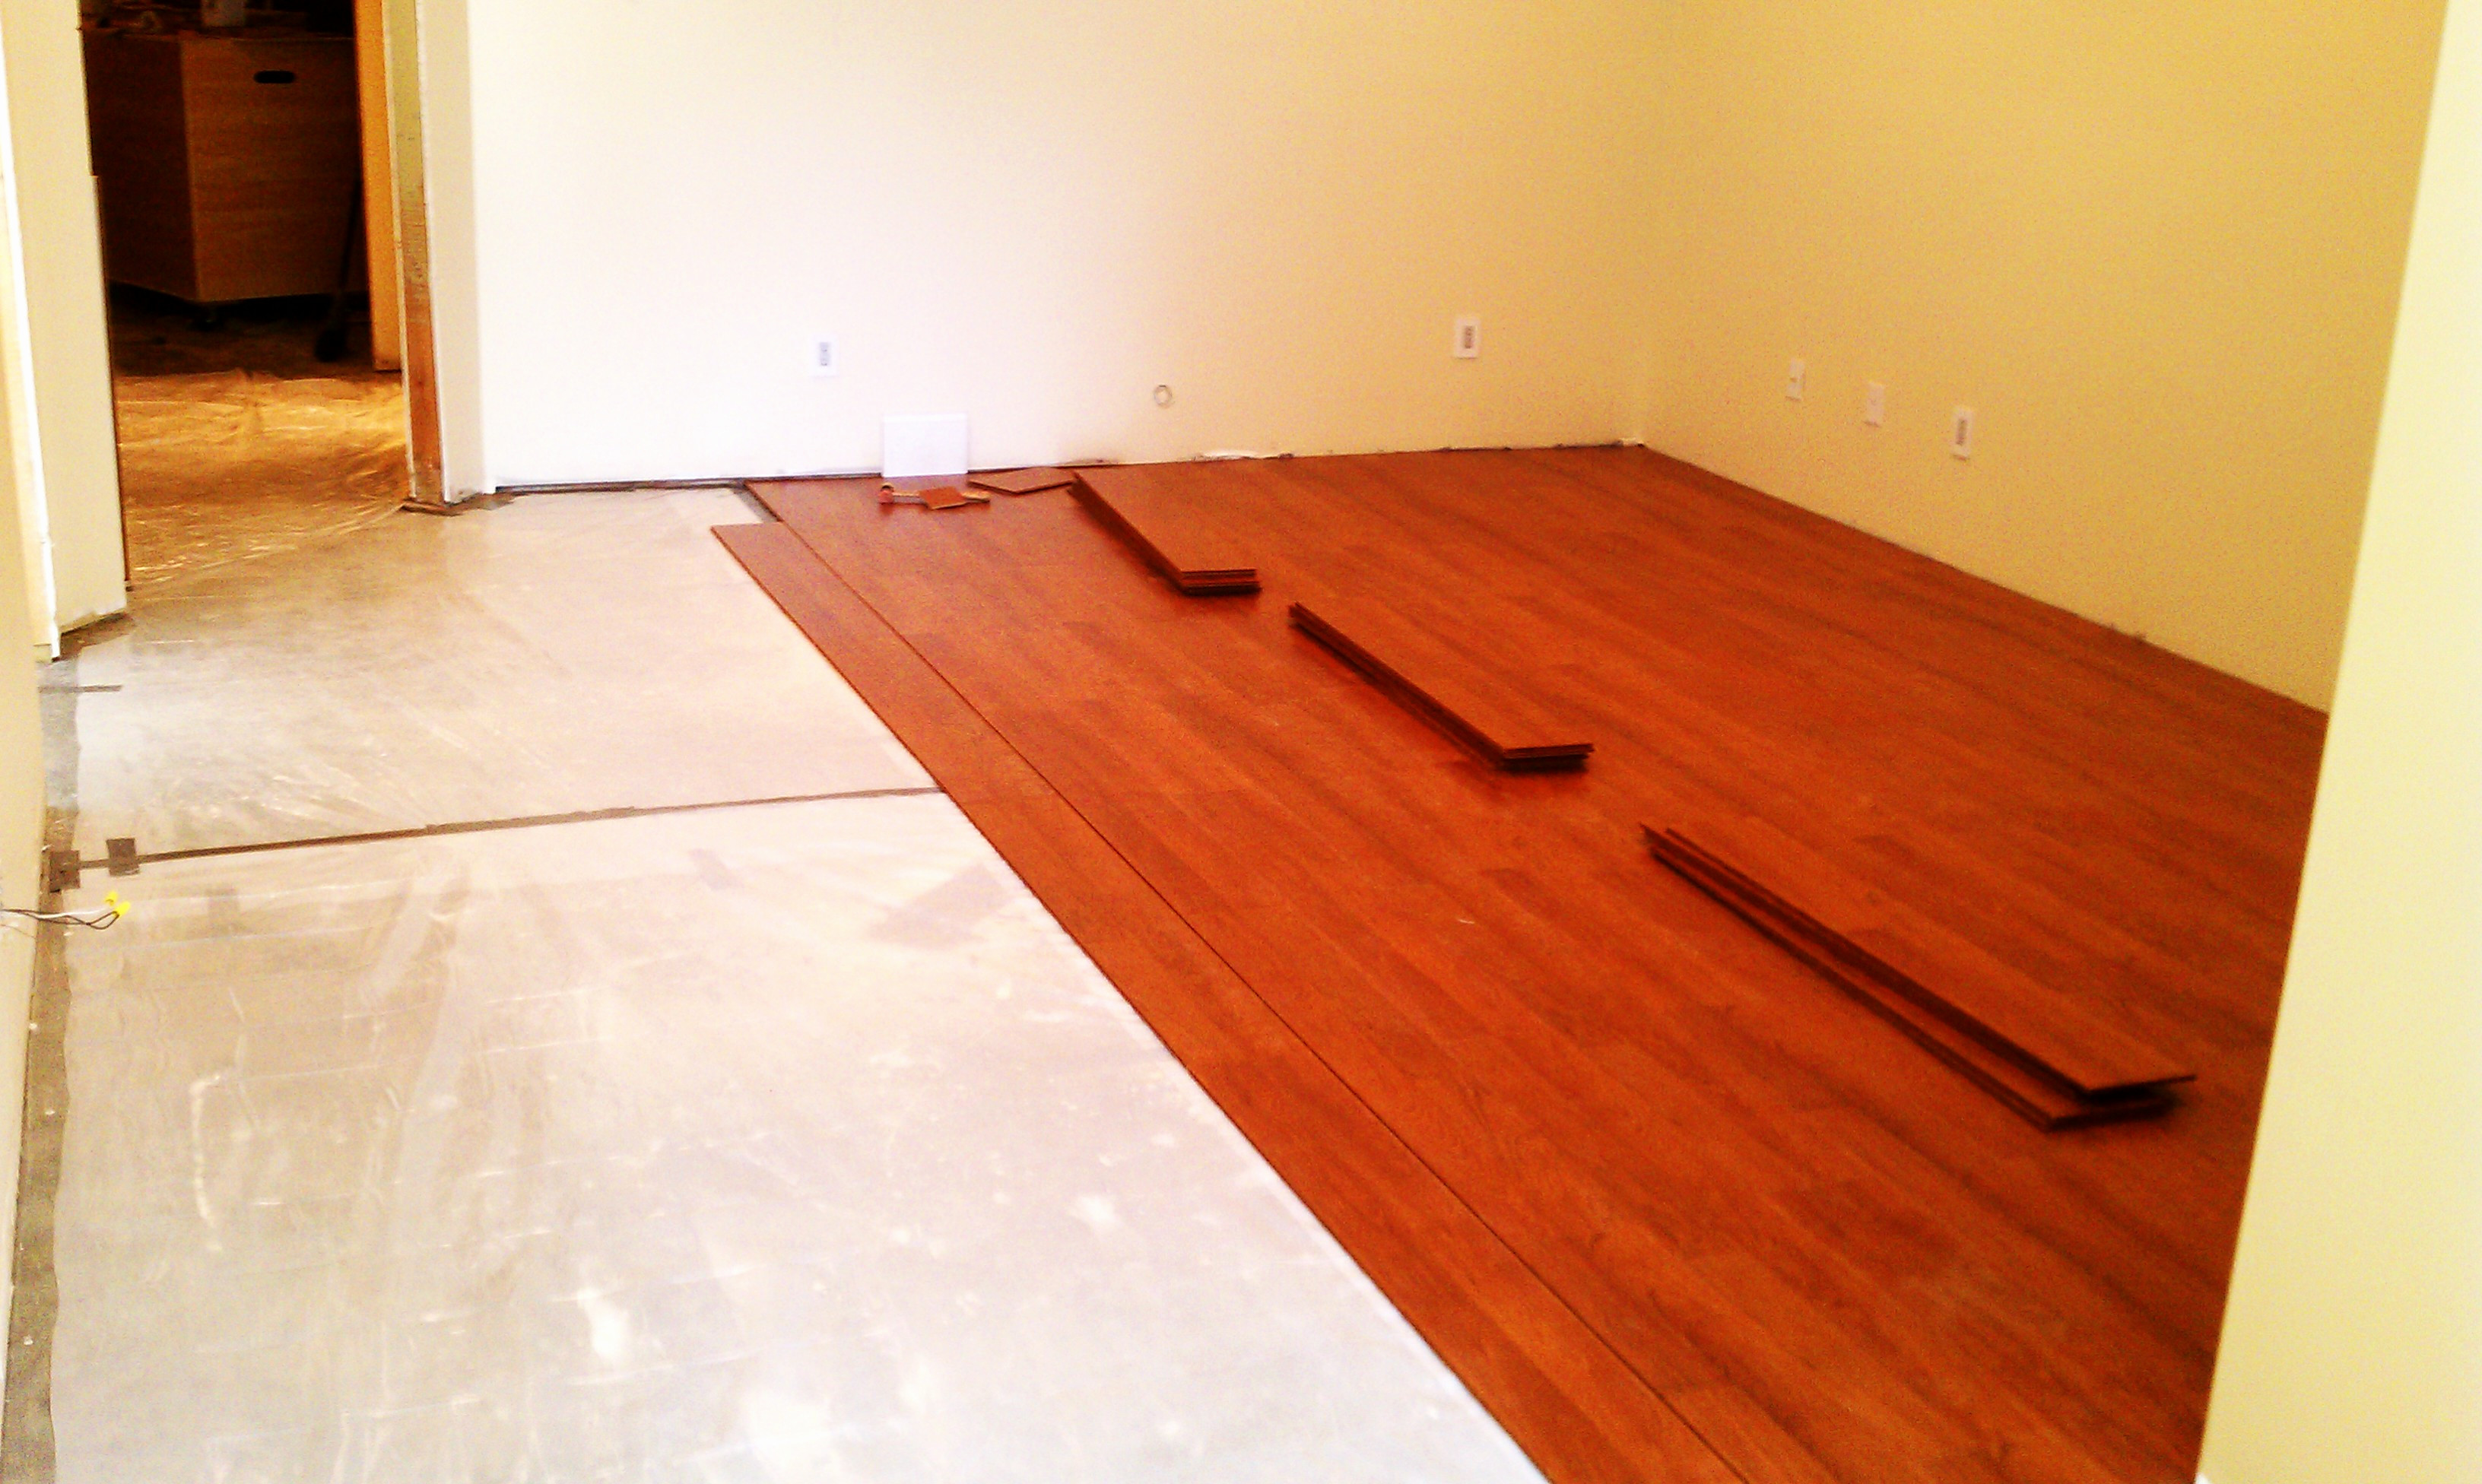 hardwood floor refinishing average cost per square foot of cost per square foot to refinish hardwood floors it s ly a paper throughout cost per square foot to refinish hardwood floors 50 new average cost to refinish hardwood floors